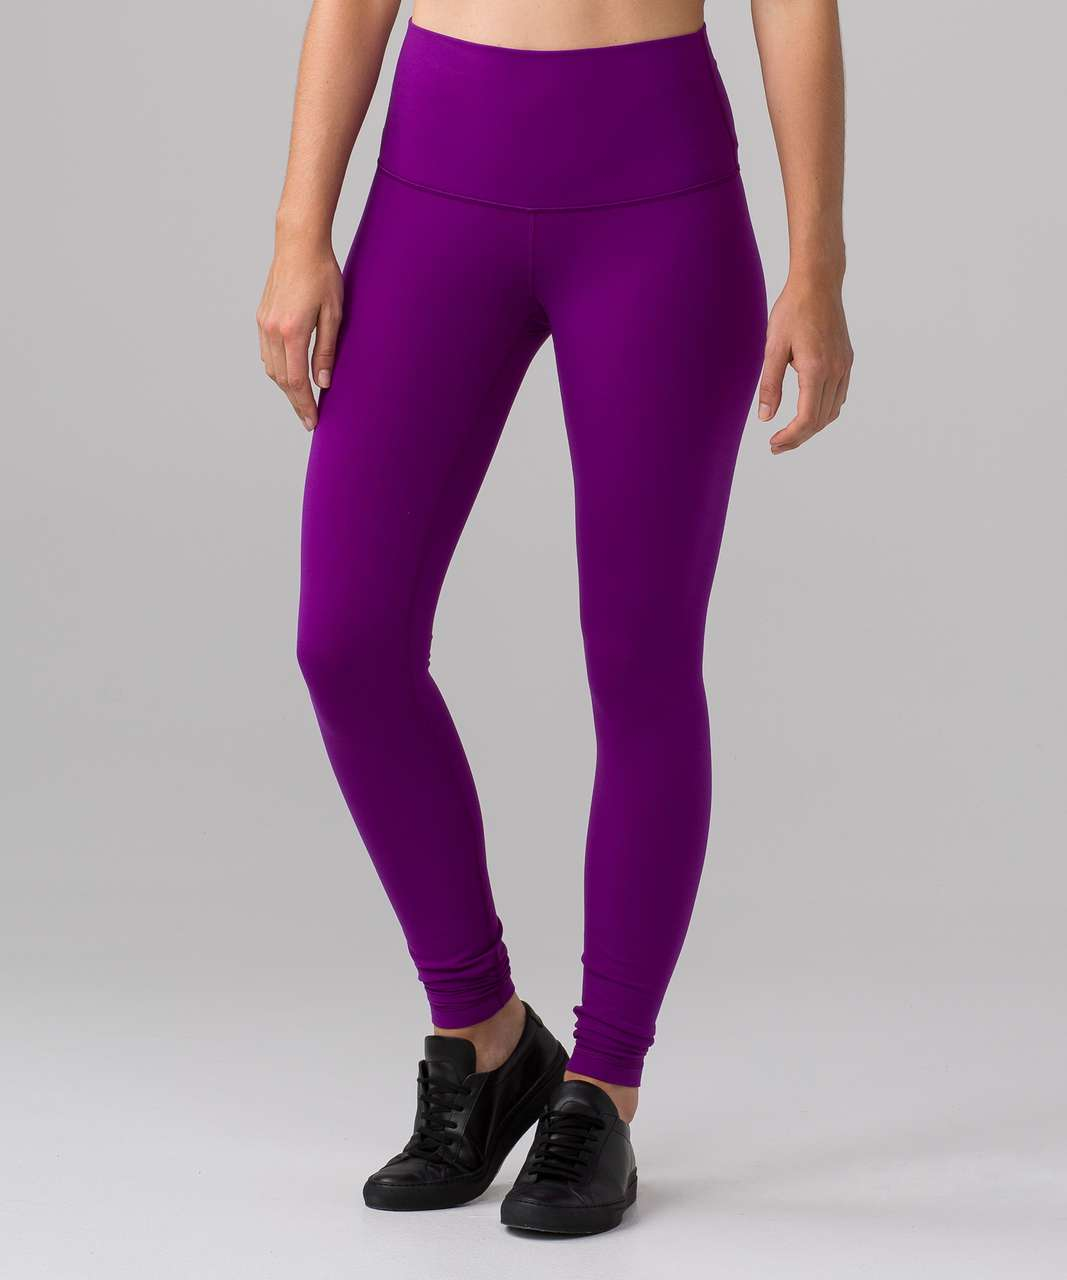 Lululemon Wunder Under Pant III (Brushed) - Tender Violet